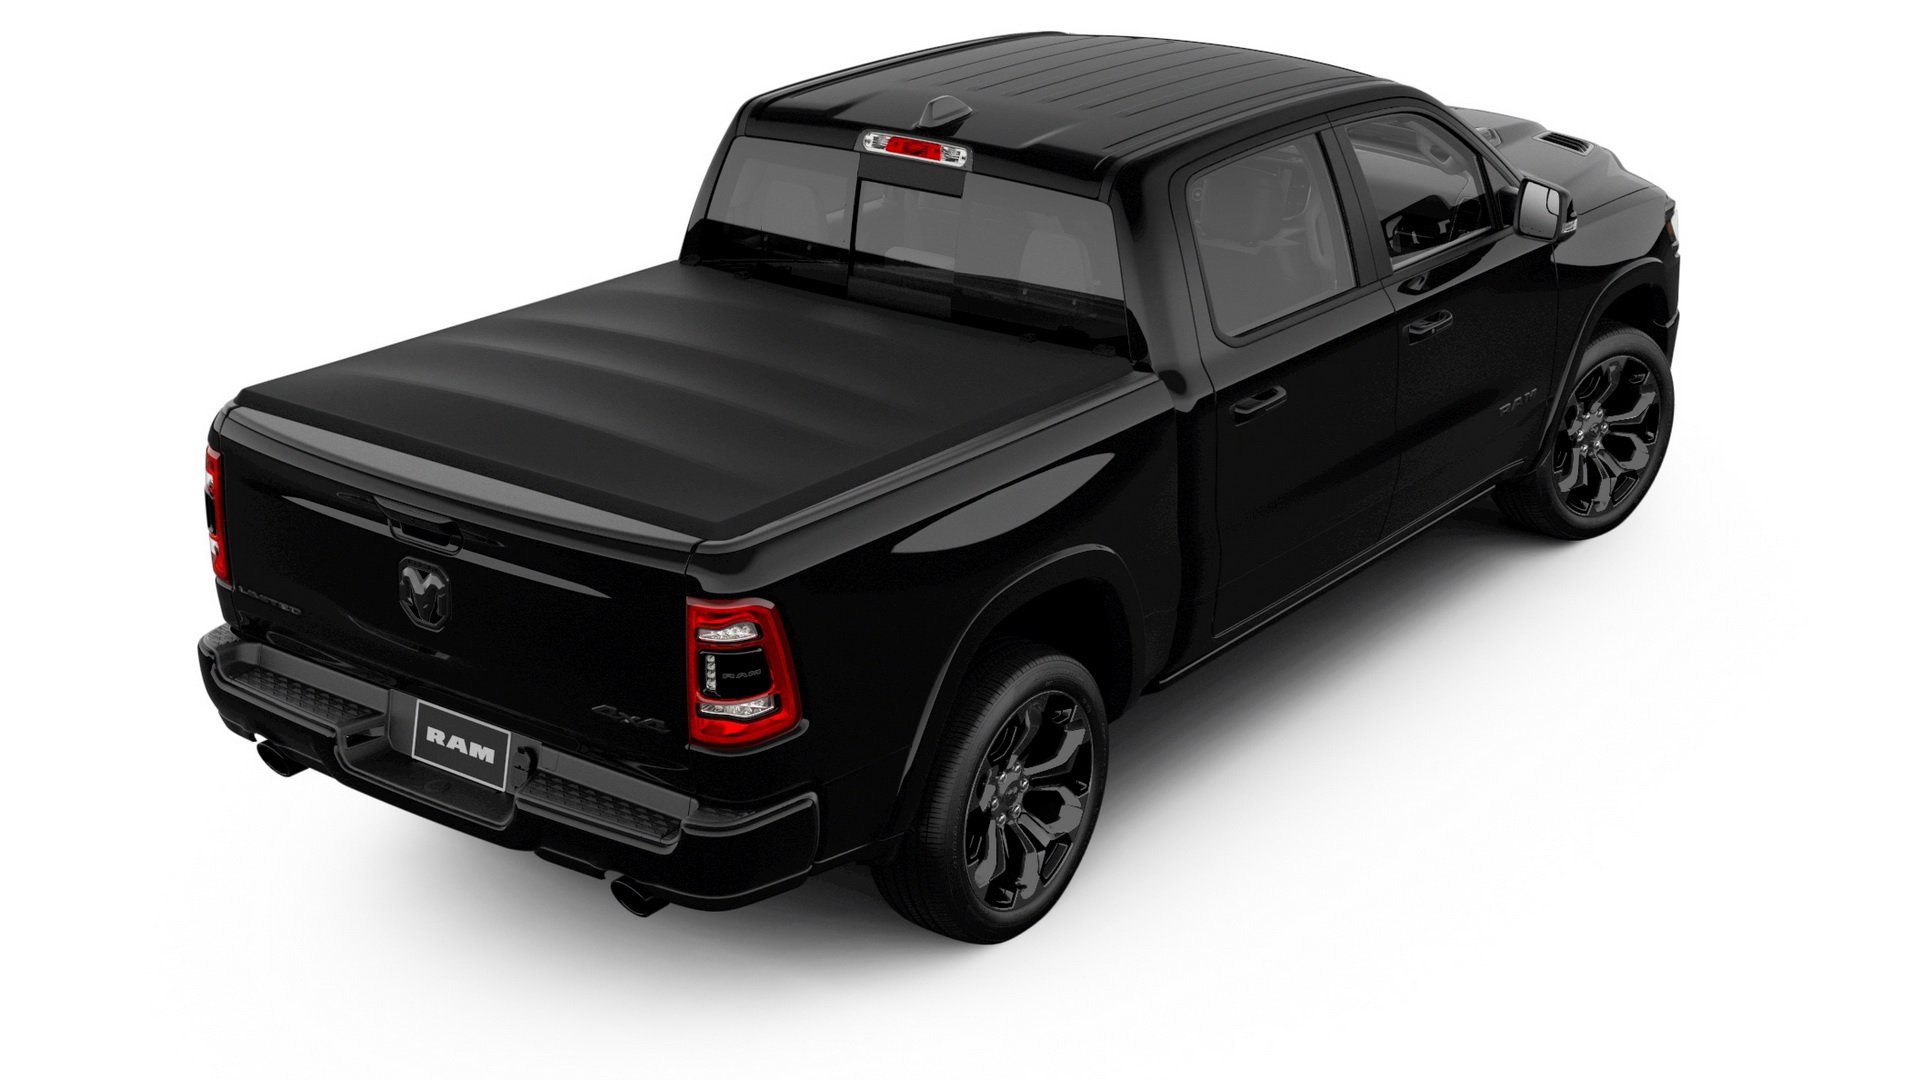 Ram 1500 Limited Black Edition